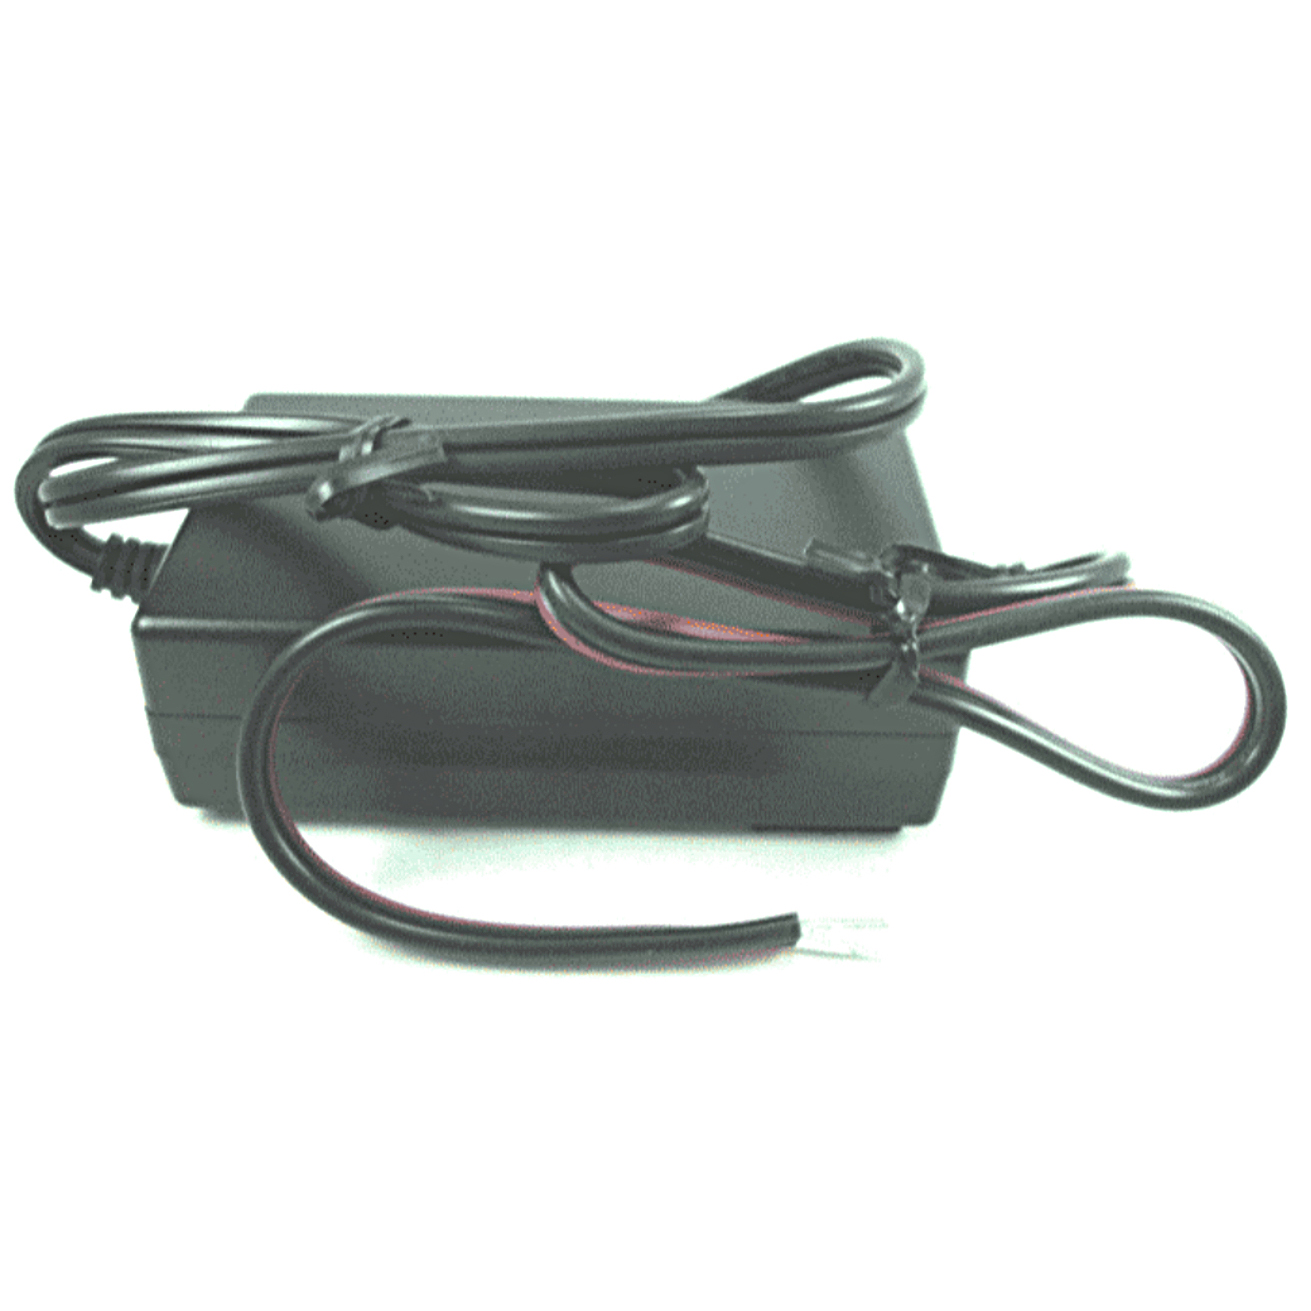 Generac Battery Charger 0G8023